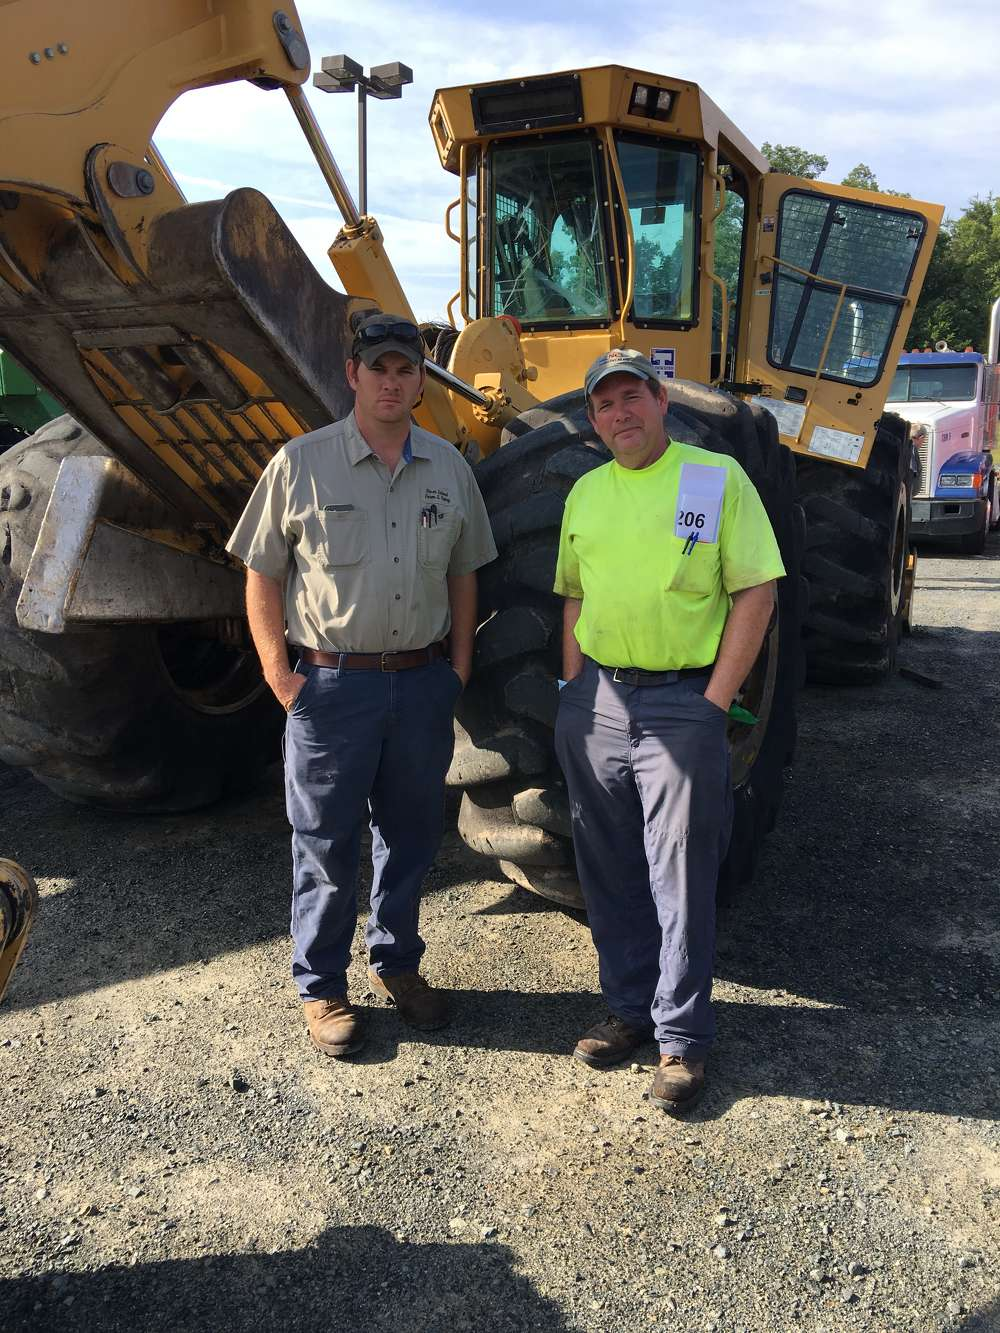 Evan Haigler (L) of River Island Inc. in Monroe, N.C., and Stuart Deaton of Old Dominion Timber in Ashland, Va., consider bidding on this Tigercat 610C machine.